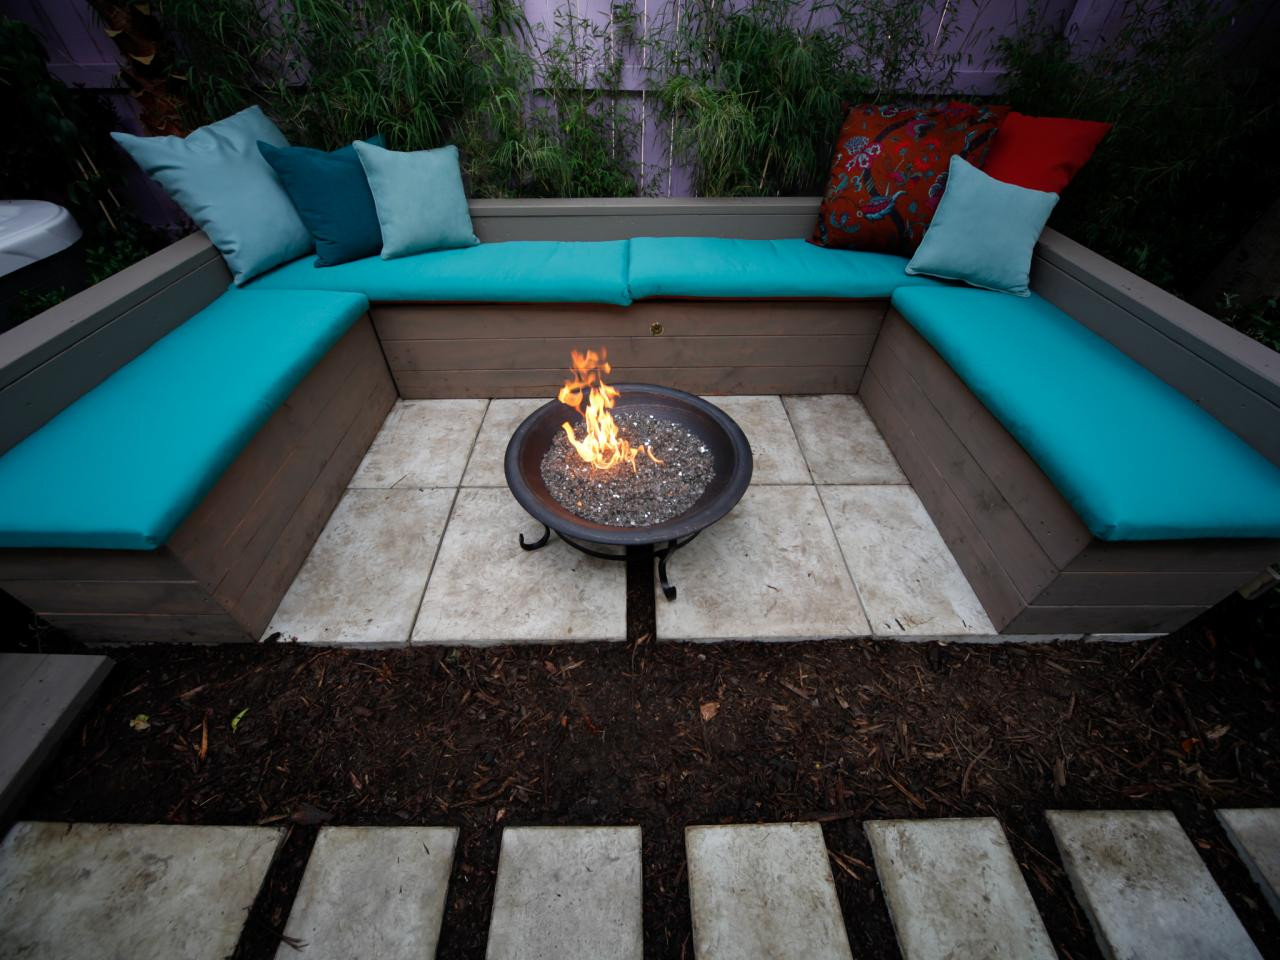 Best ideas about Patio Fire Pit . Save or Pin In Ground Fire Pit Design Juggles Cold Outdoor into a Warm Now.